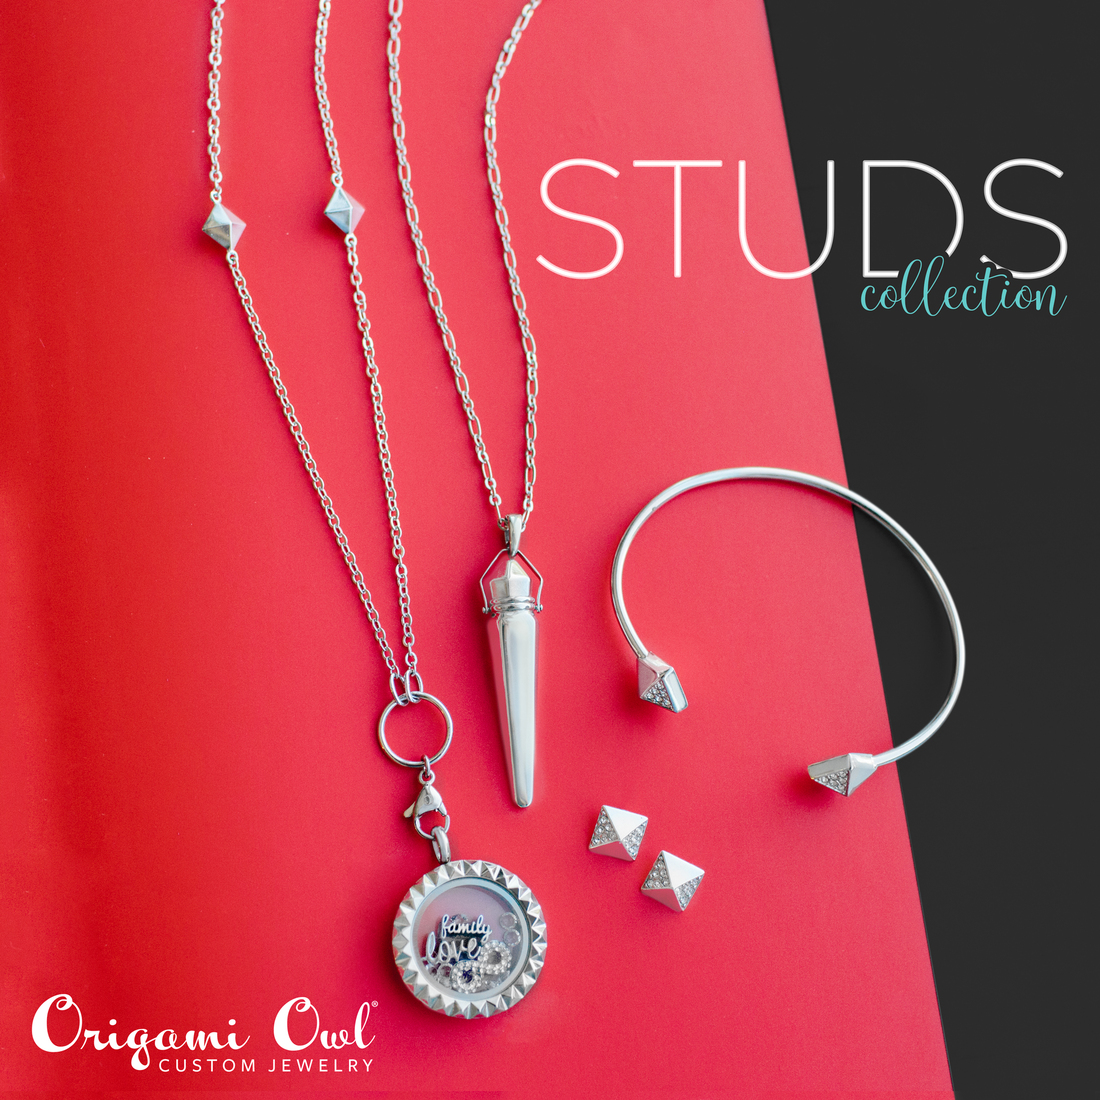 Origami owl special edition always with you studs collection origami owl in memory special edition stud collection always with you jeuxipadfo Images